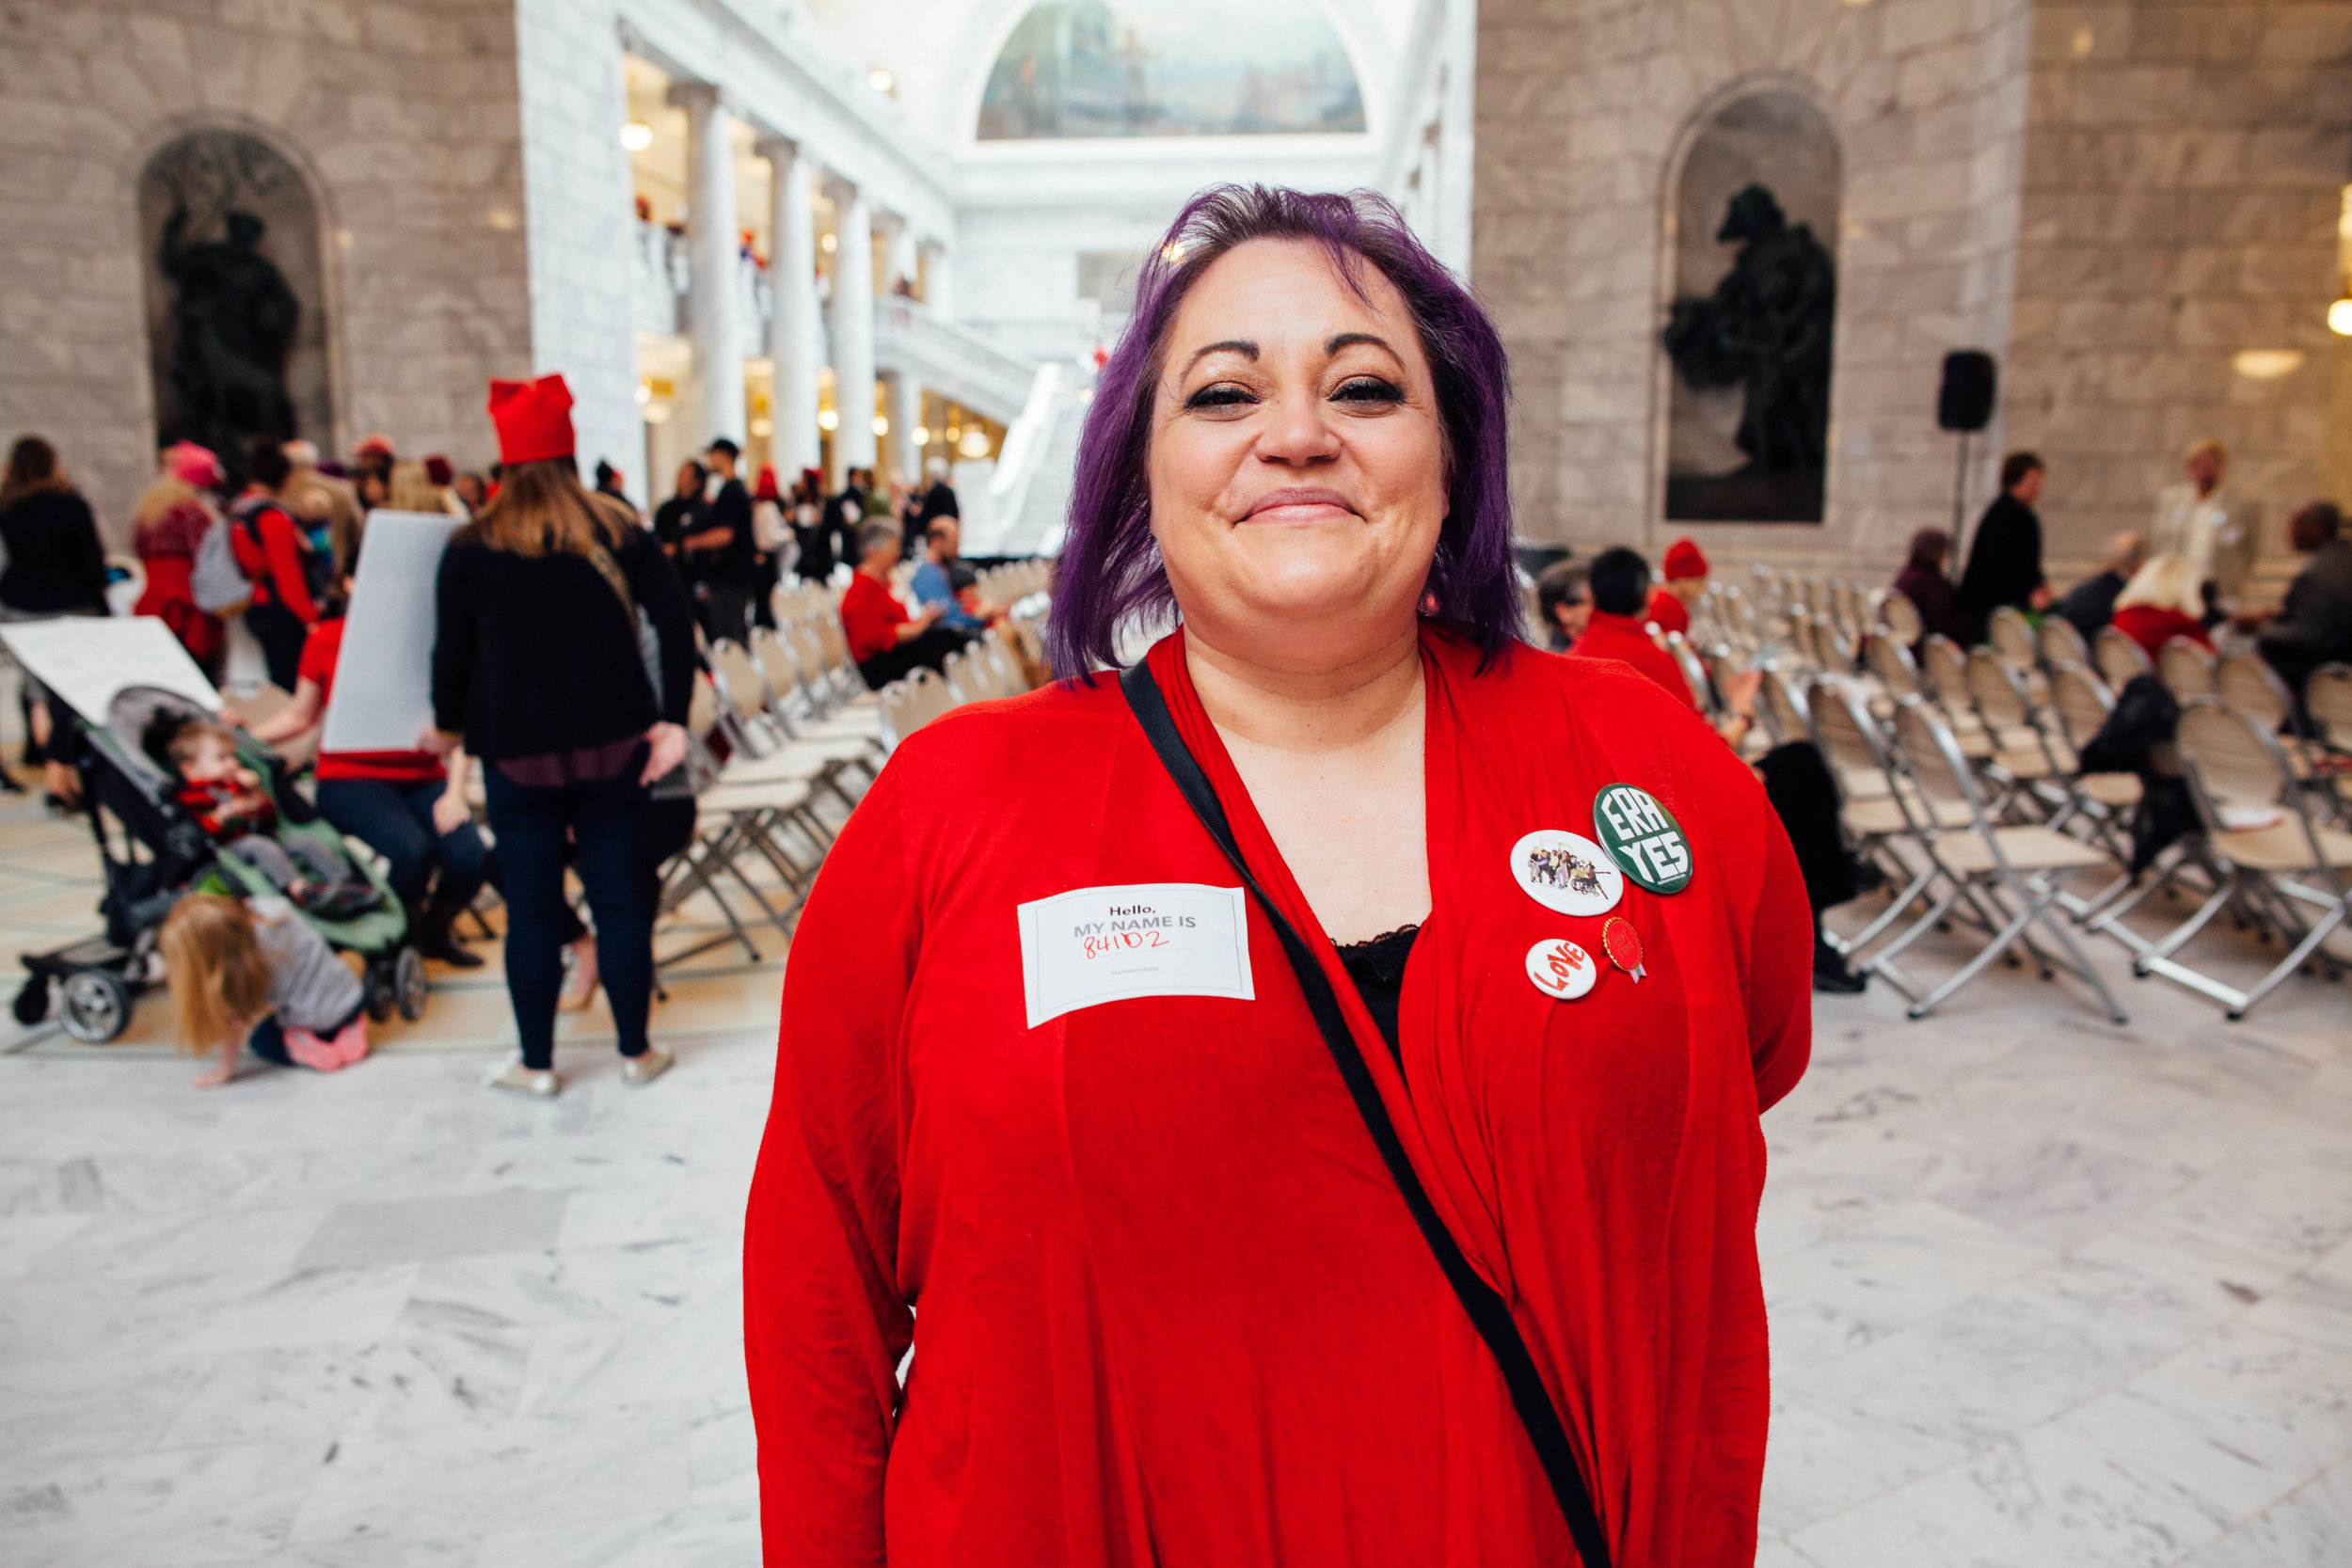 Jennifer Thomas, a Salt Lake City resident, said she hopes to see the Equal Rights Amendment (ERA) passed in her lifetime.